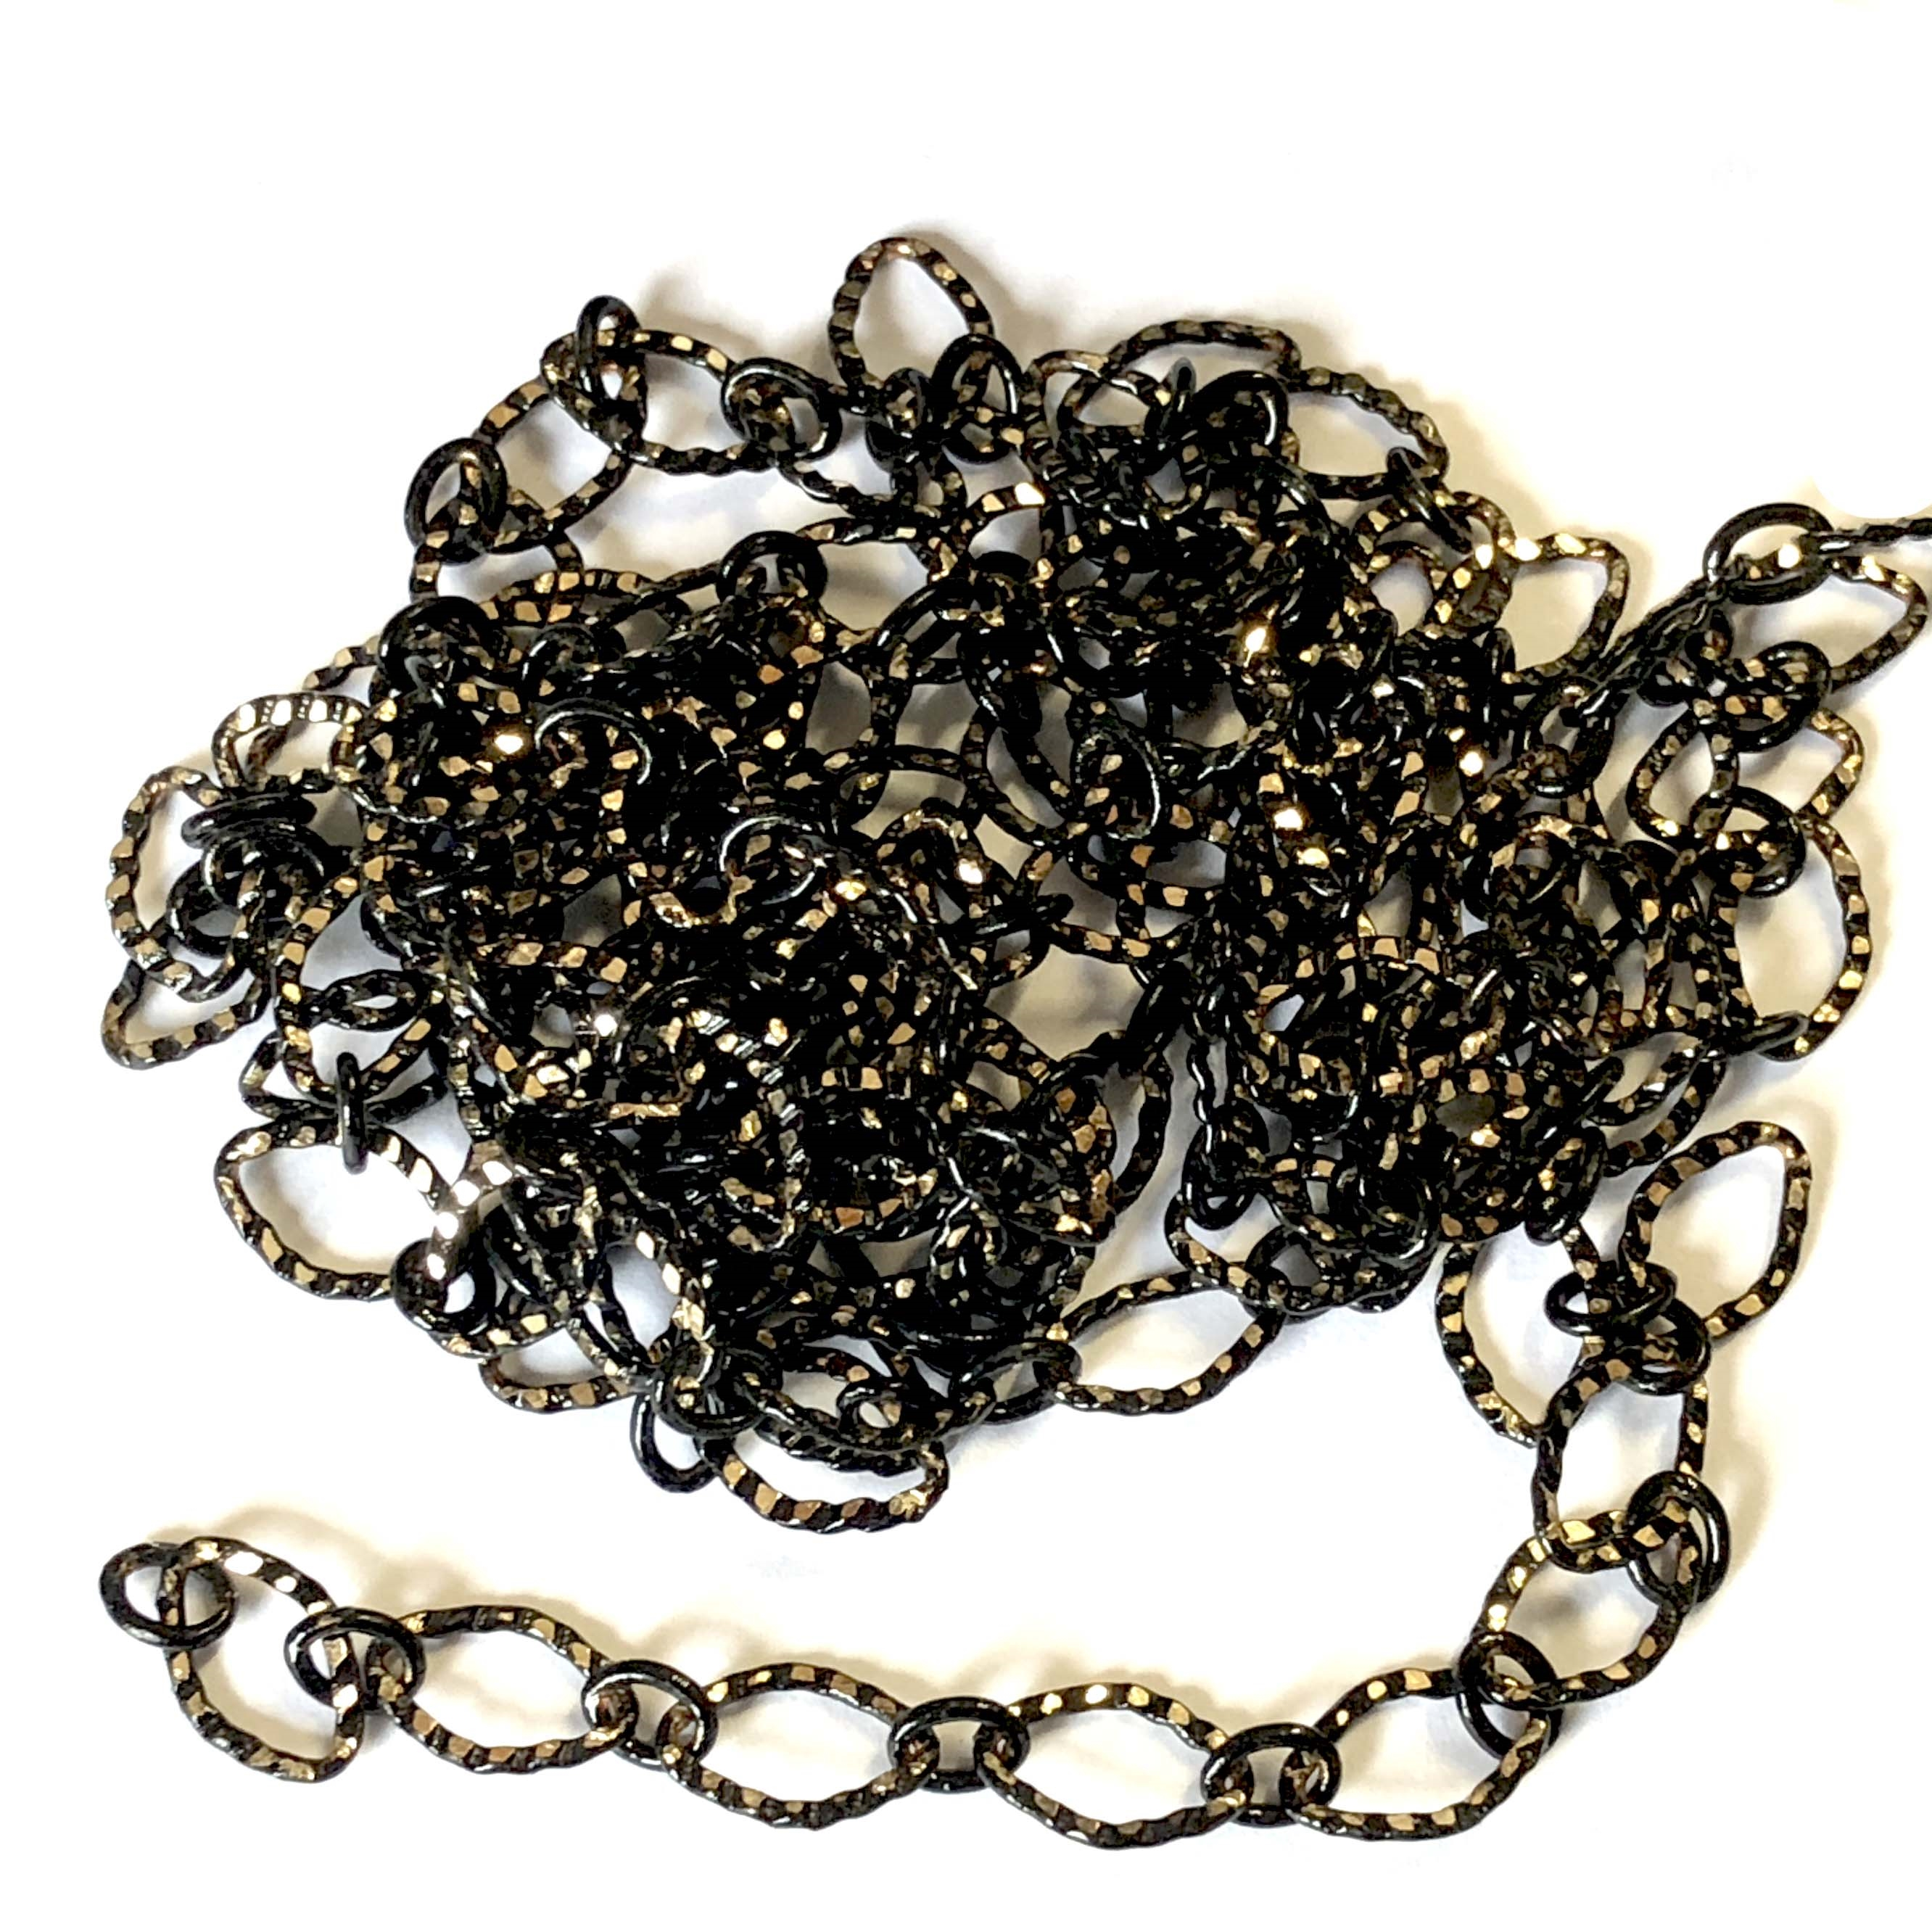 notched cable chain, black/gold, oval chain, brass chain, 03357, B'sue Boutiques, nickel free, us made chain, jewelry chain, jewelry making chain, bracelet chain, necklace chain, black and gold chain,  jewelry supplies, jewelry findings